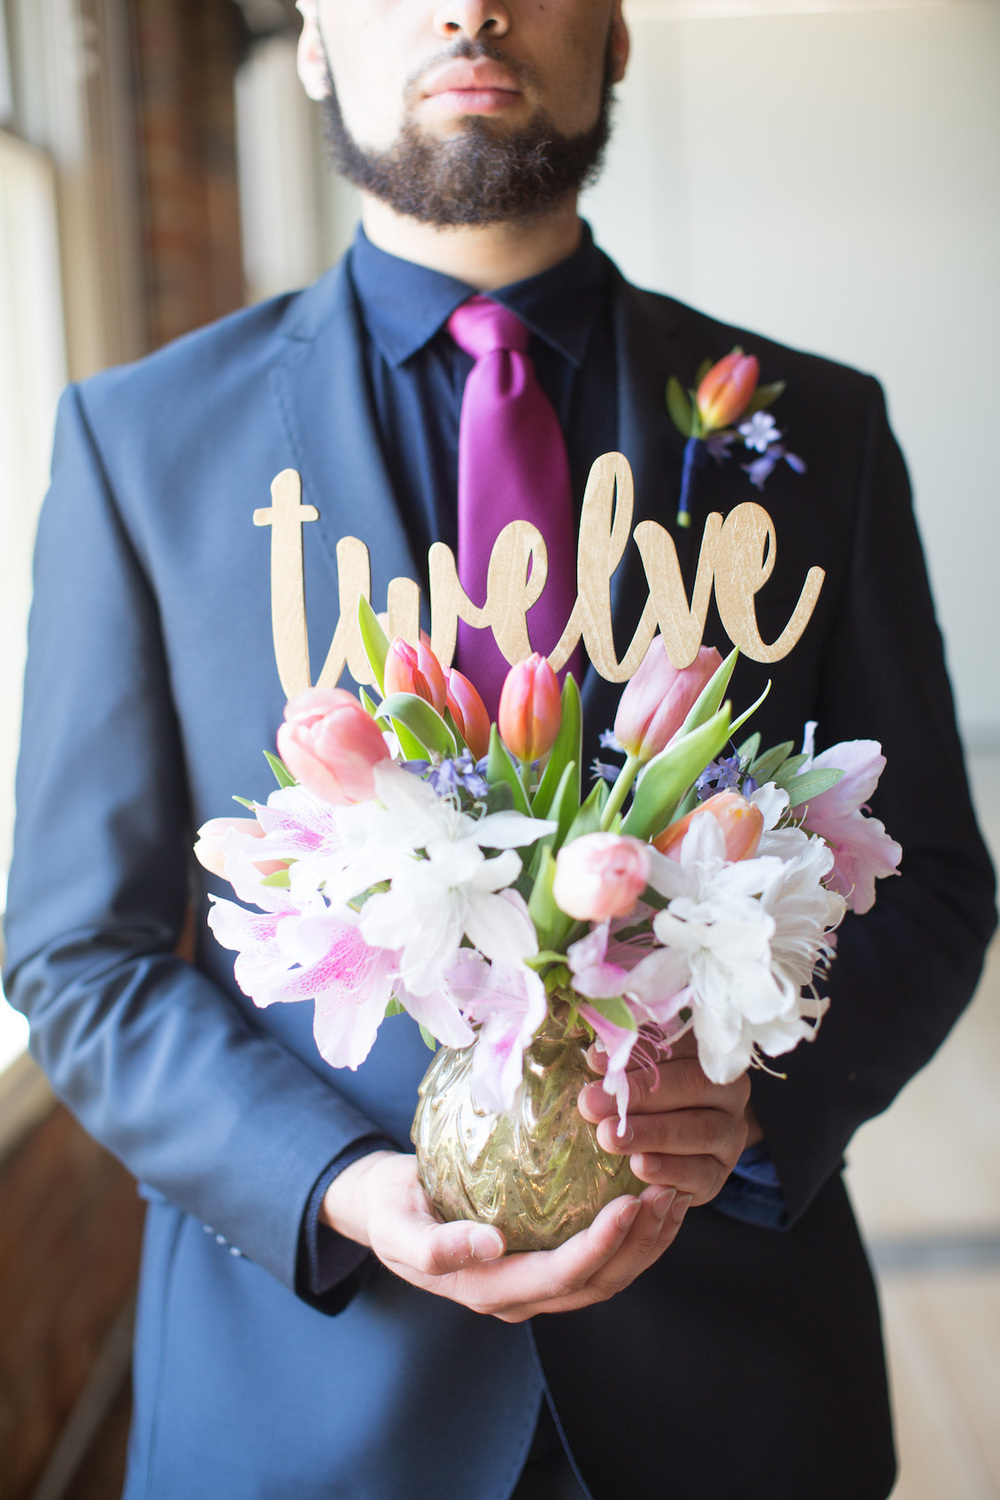 Handmade Table Number Decoration for Weddings / Florals by EightTreeStreet / Photography by Amy Nicole